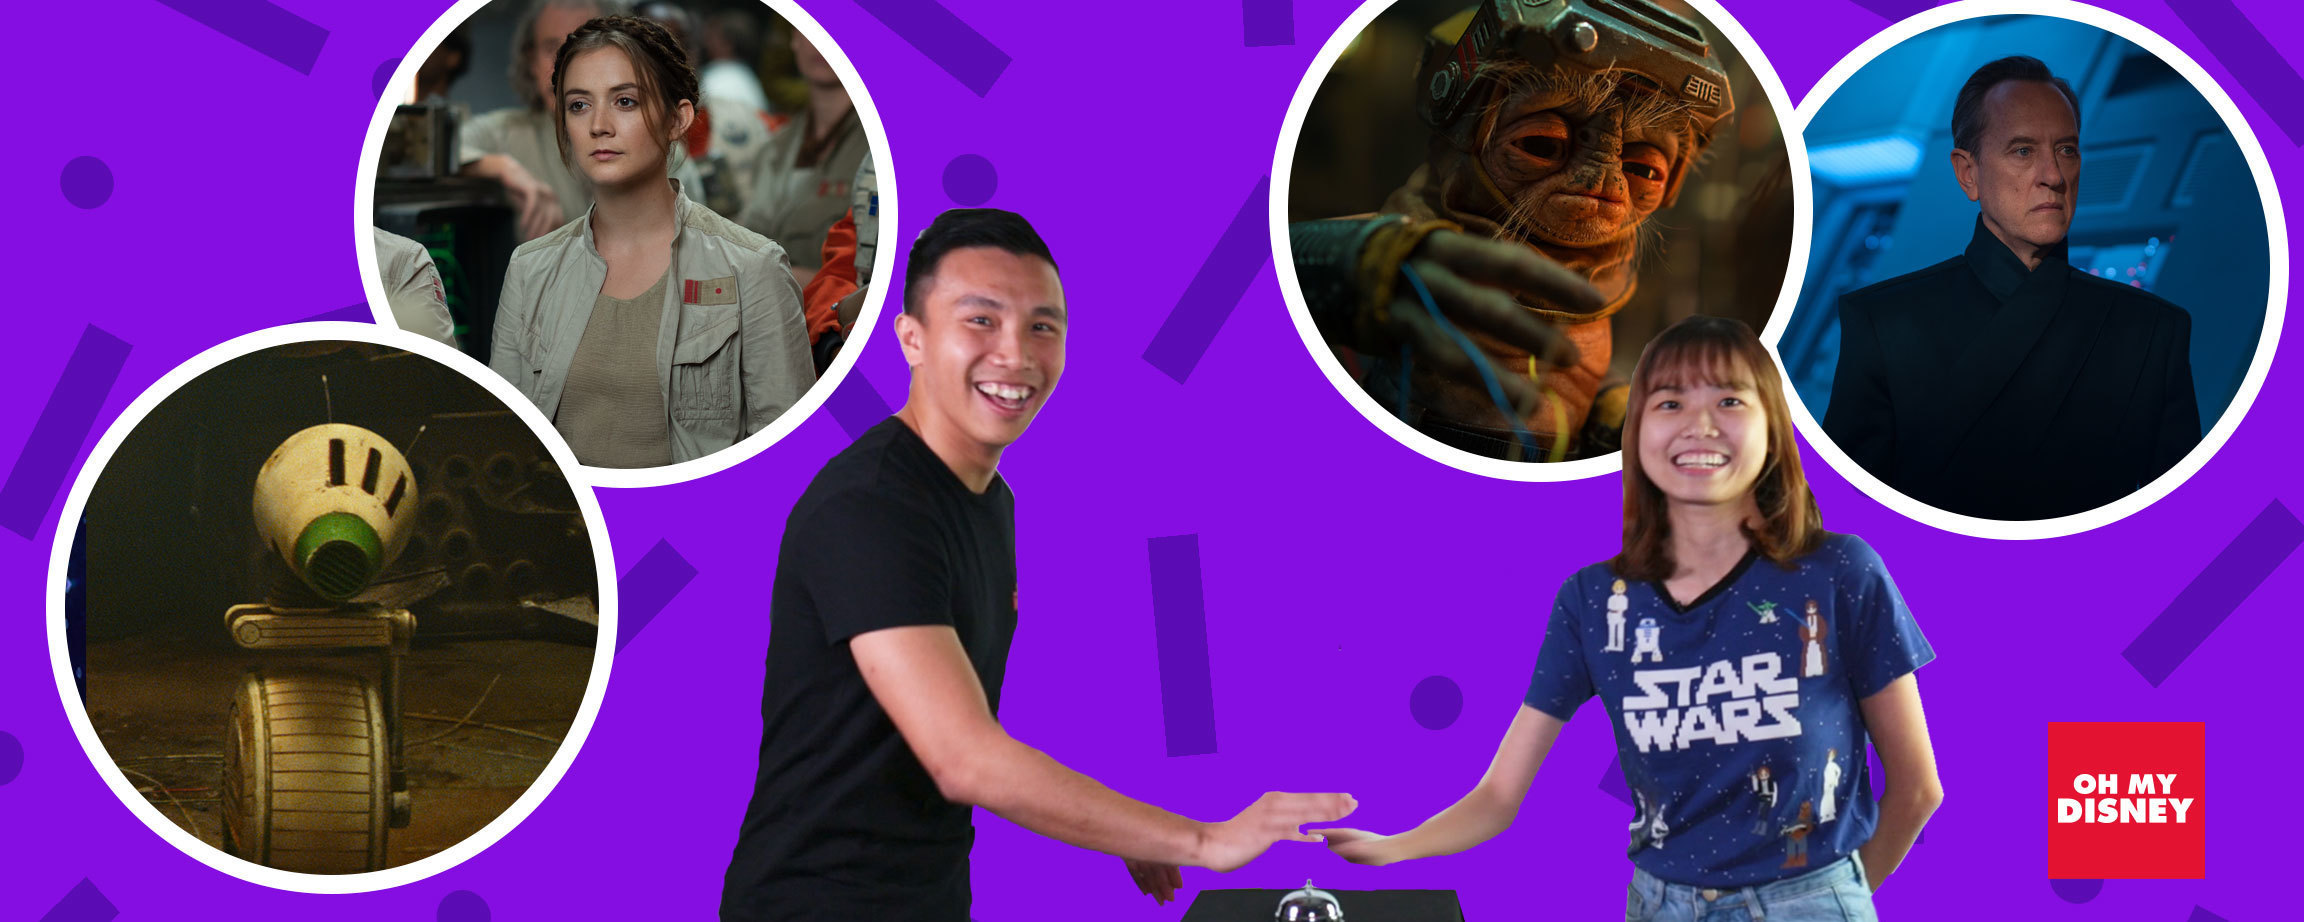 Star Wars: Rise of Skywalker Couple Quiz